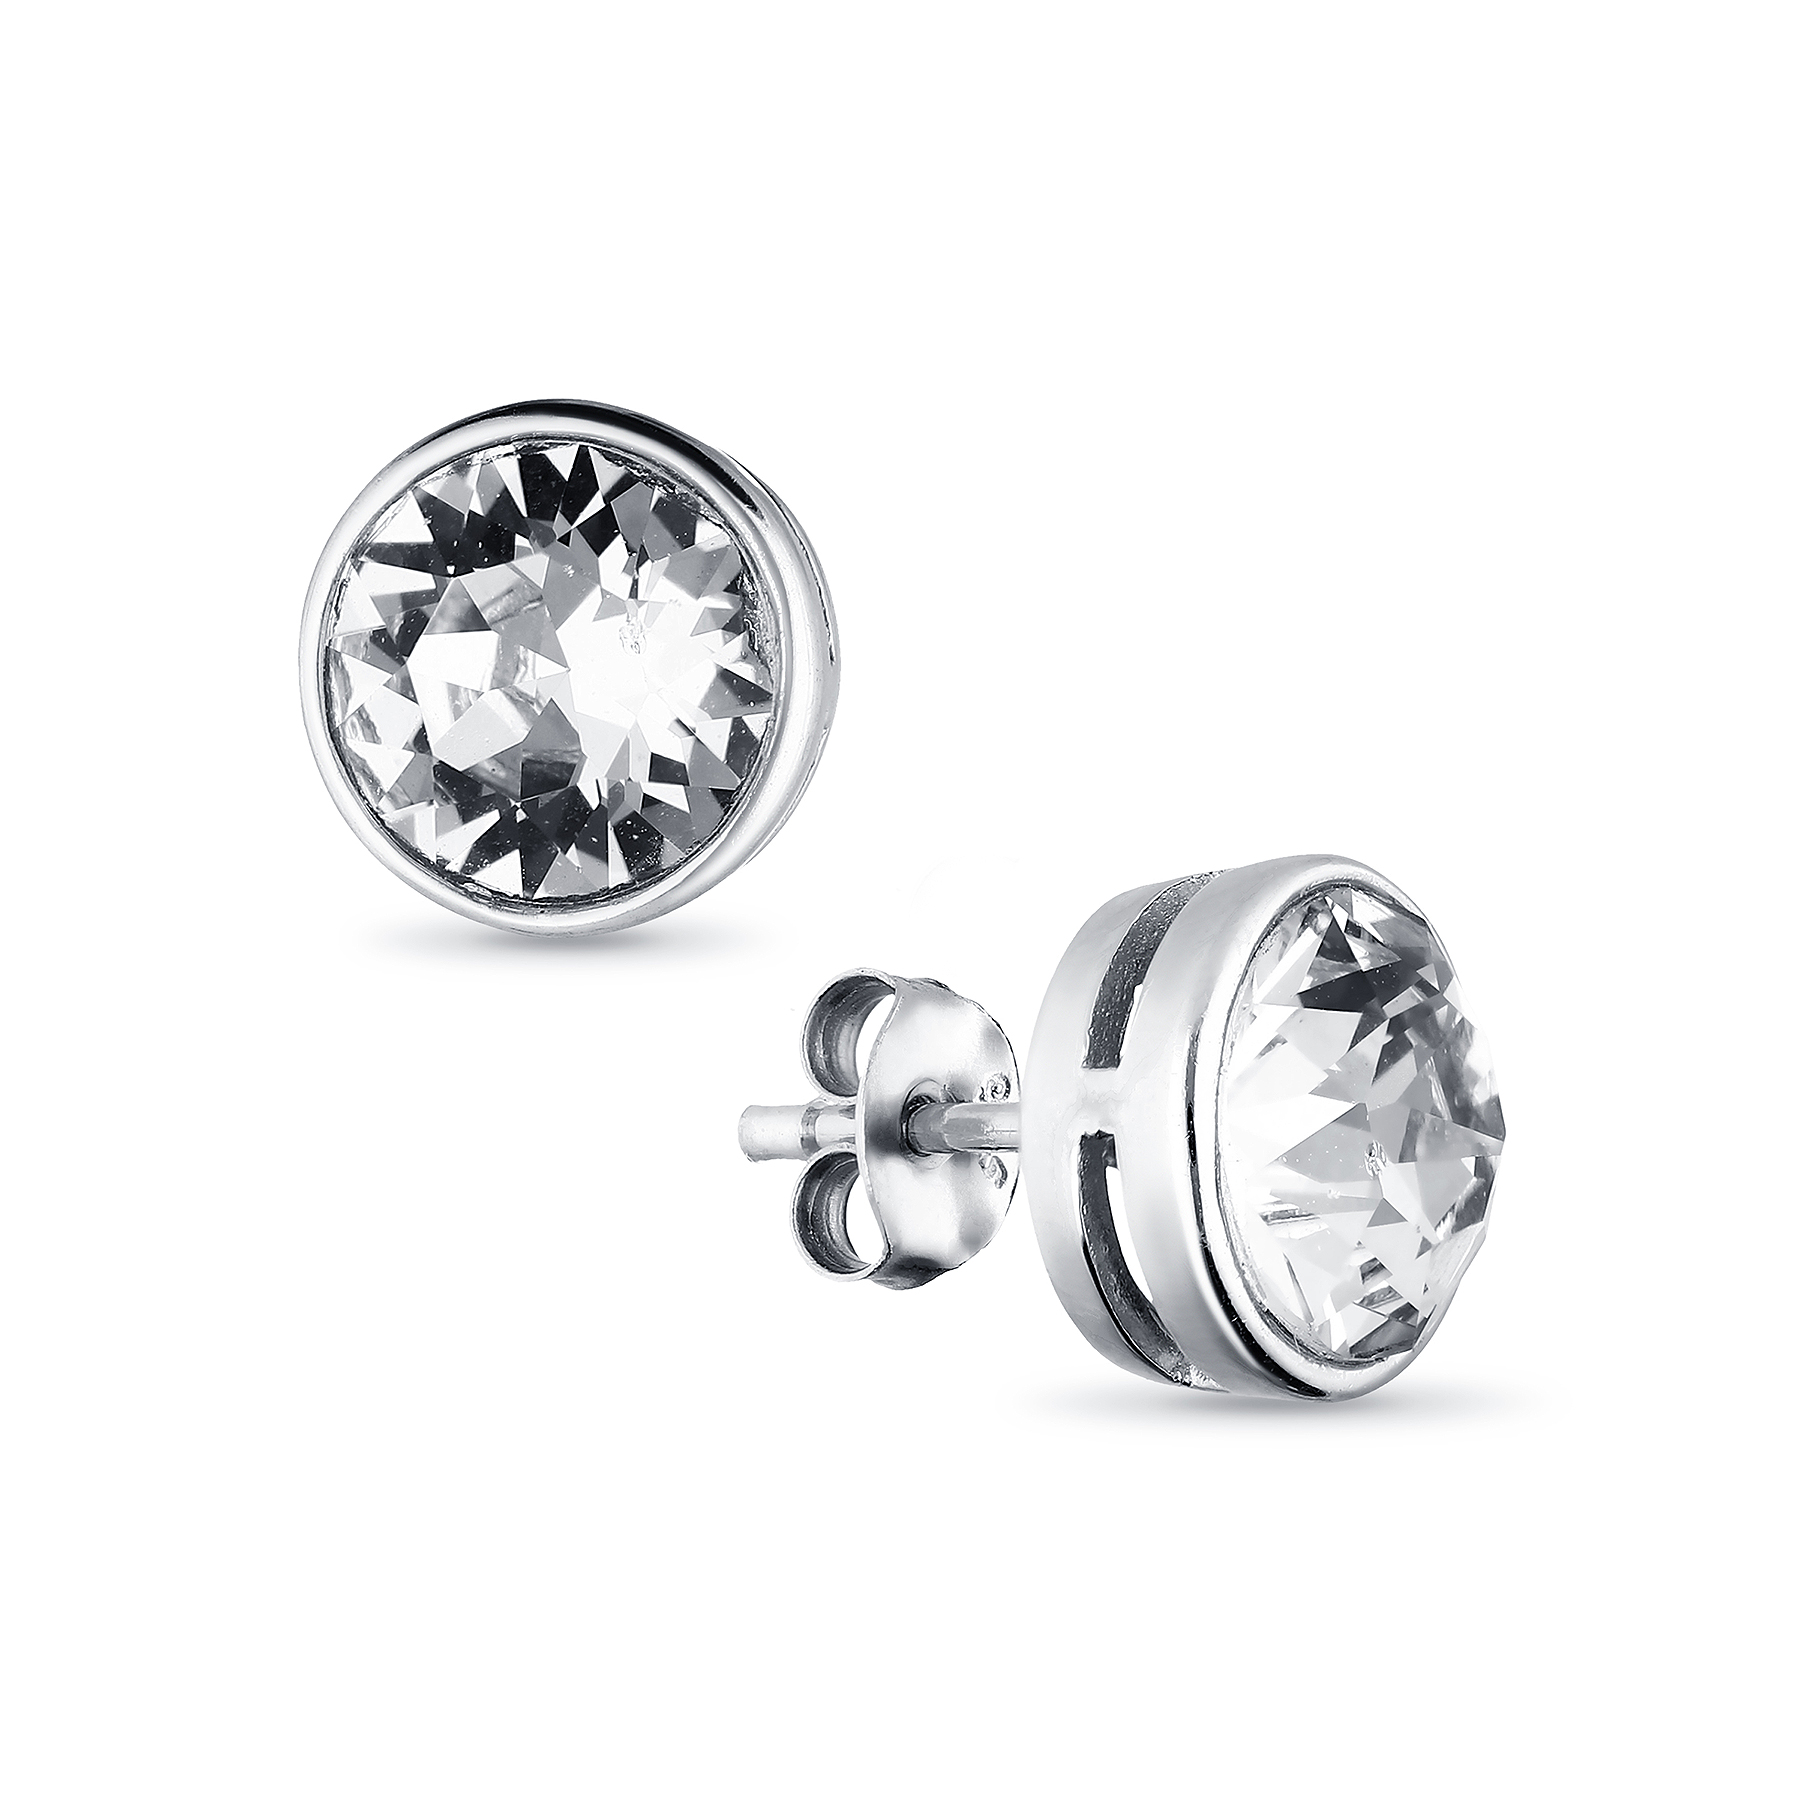 1583-210 - Sparkle by 7K - 925 Sterling Silver Push-Back Earrings Decorated With Verifiable Authentic Swarovski Crystals